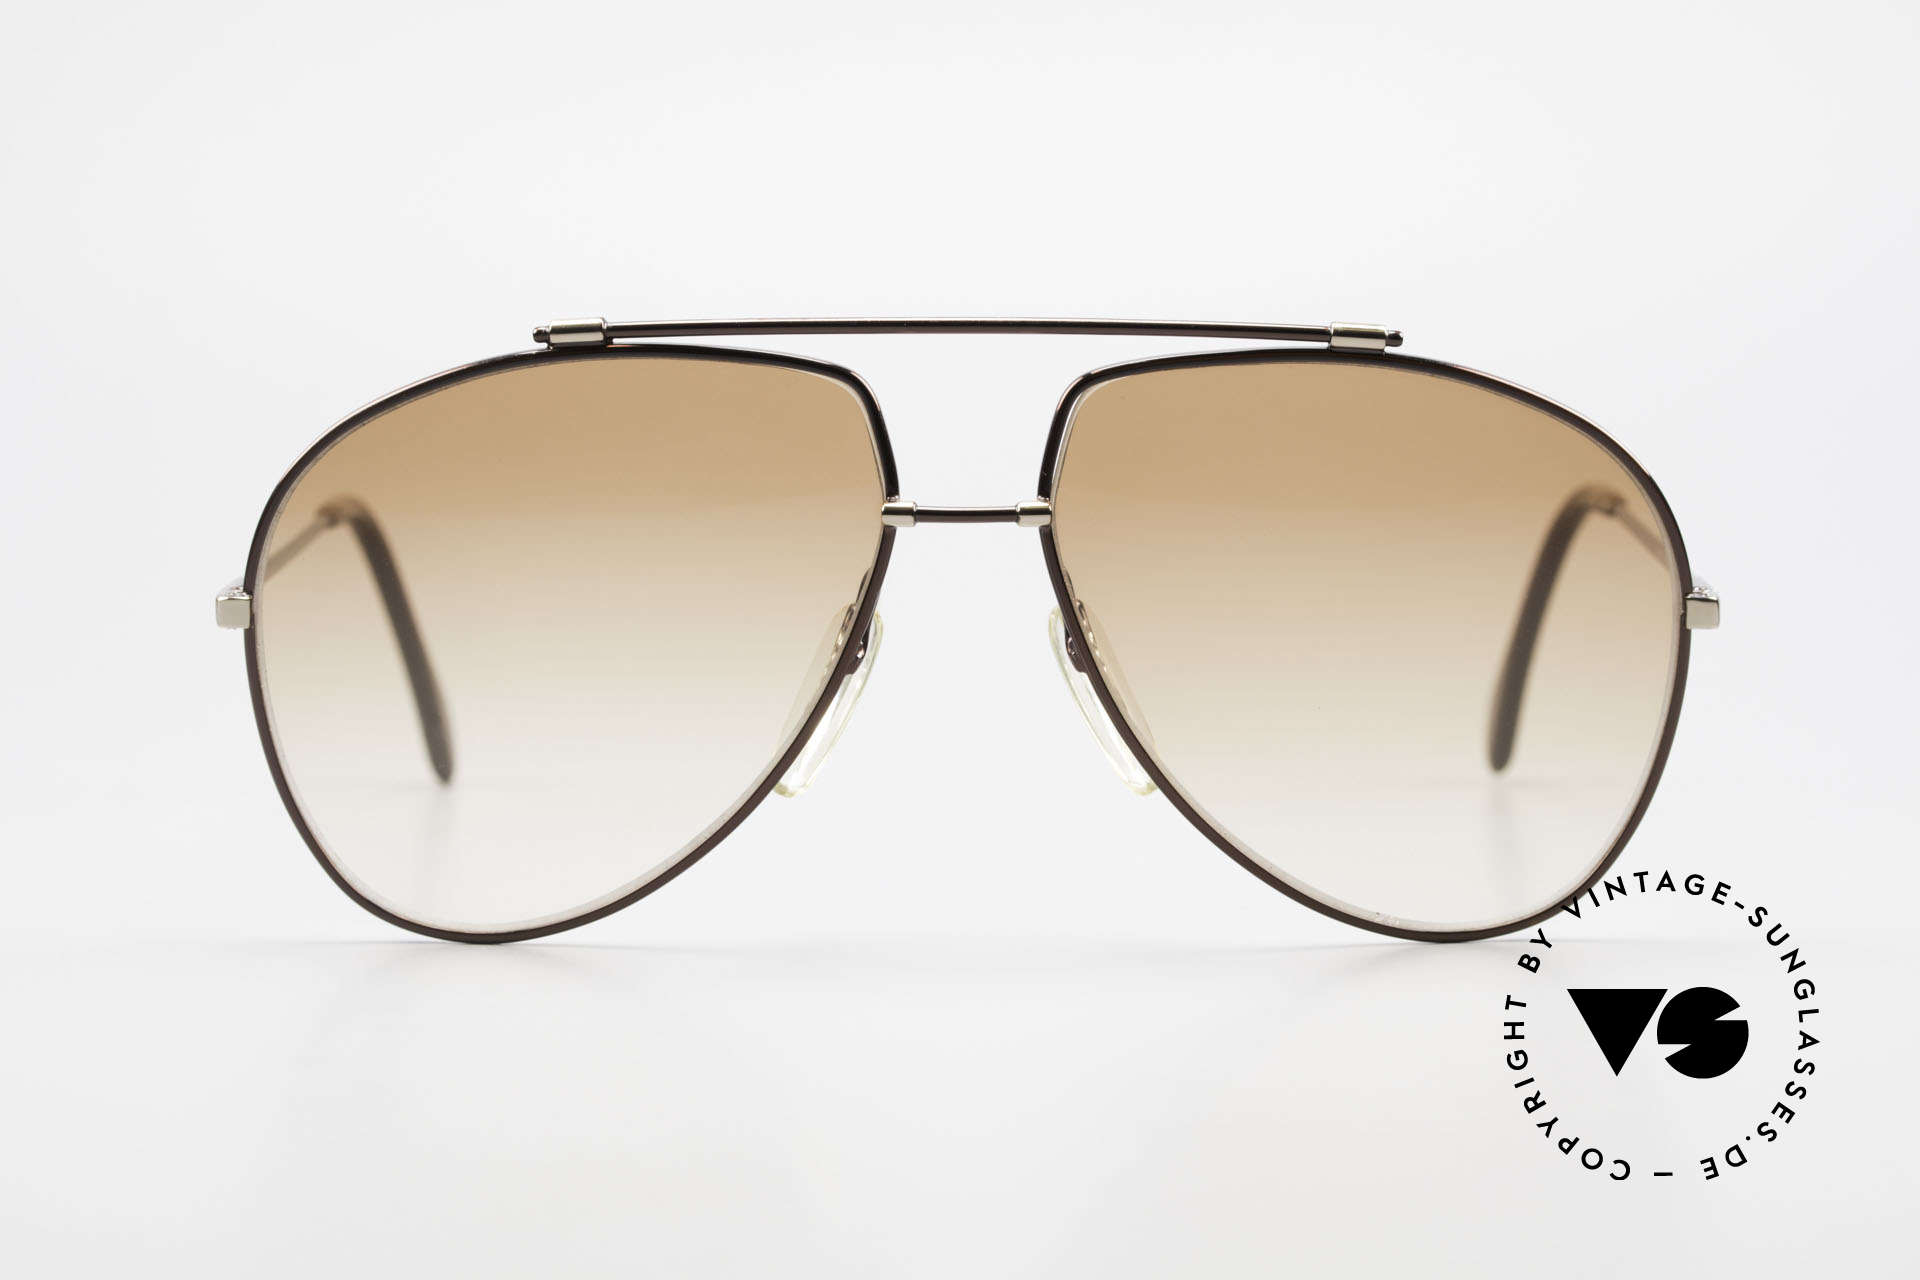 Zeiss 9371 Old 80's Aviator Sunglasses, truly 'OLD SCHOOL' or 'VINTAGE'; pure eyewear history, Made for Men